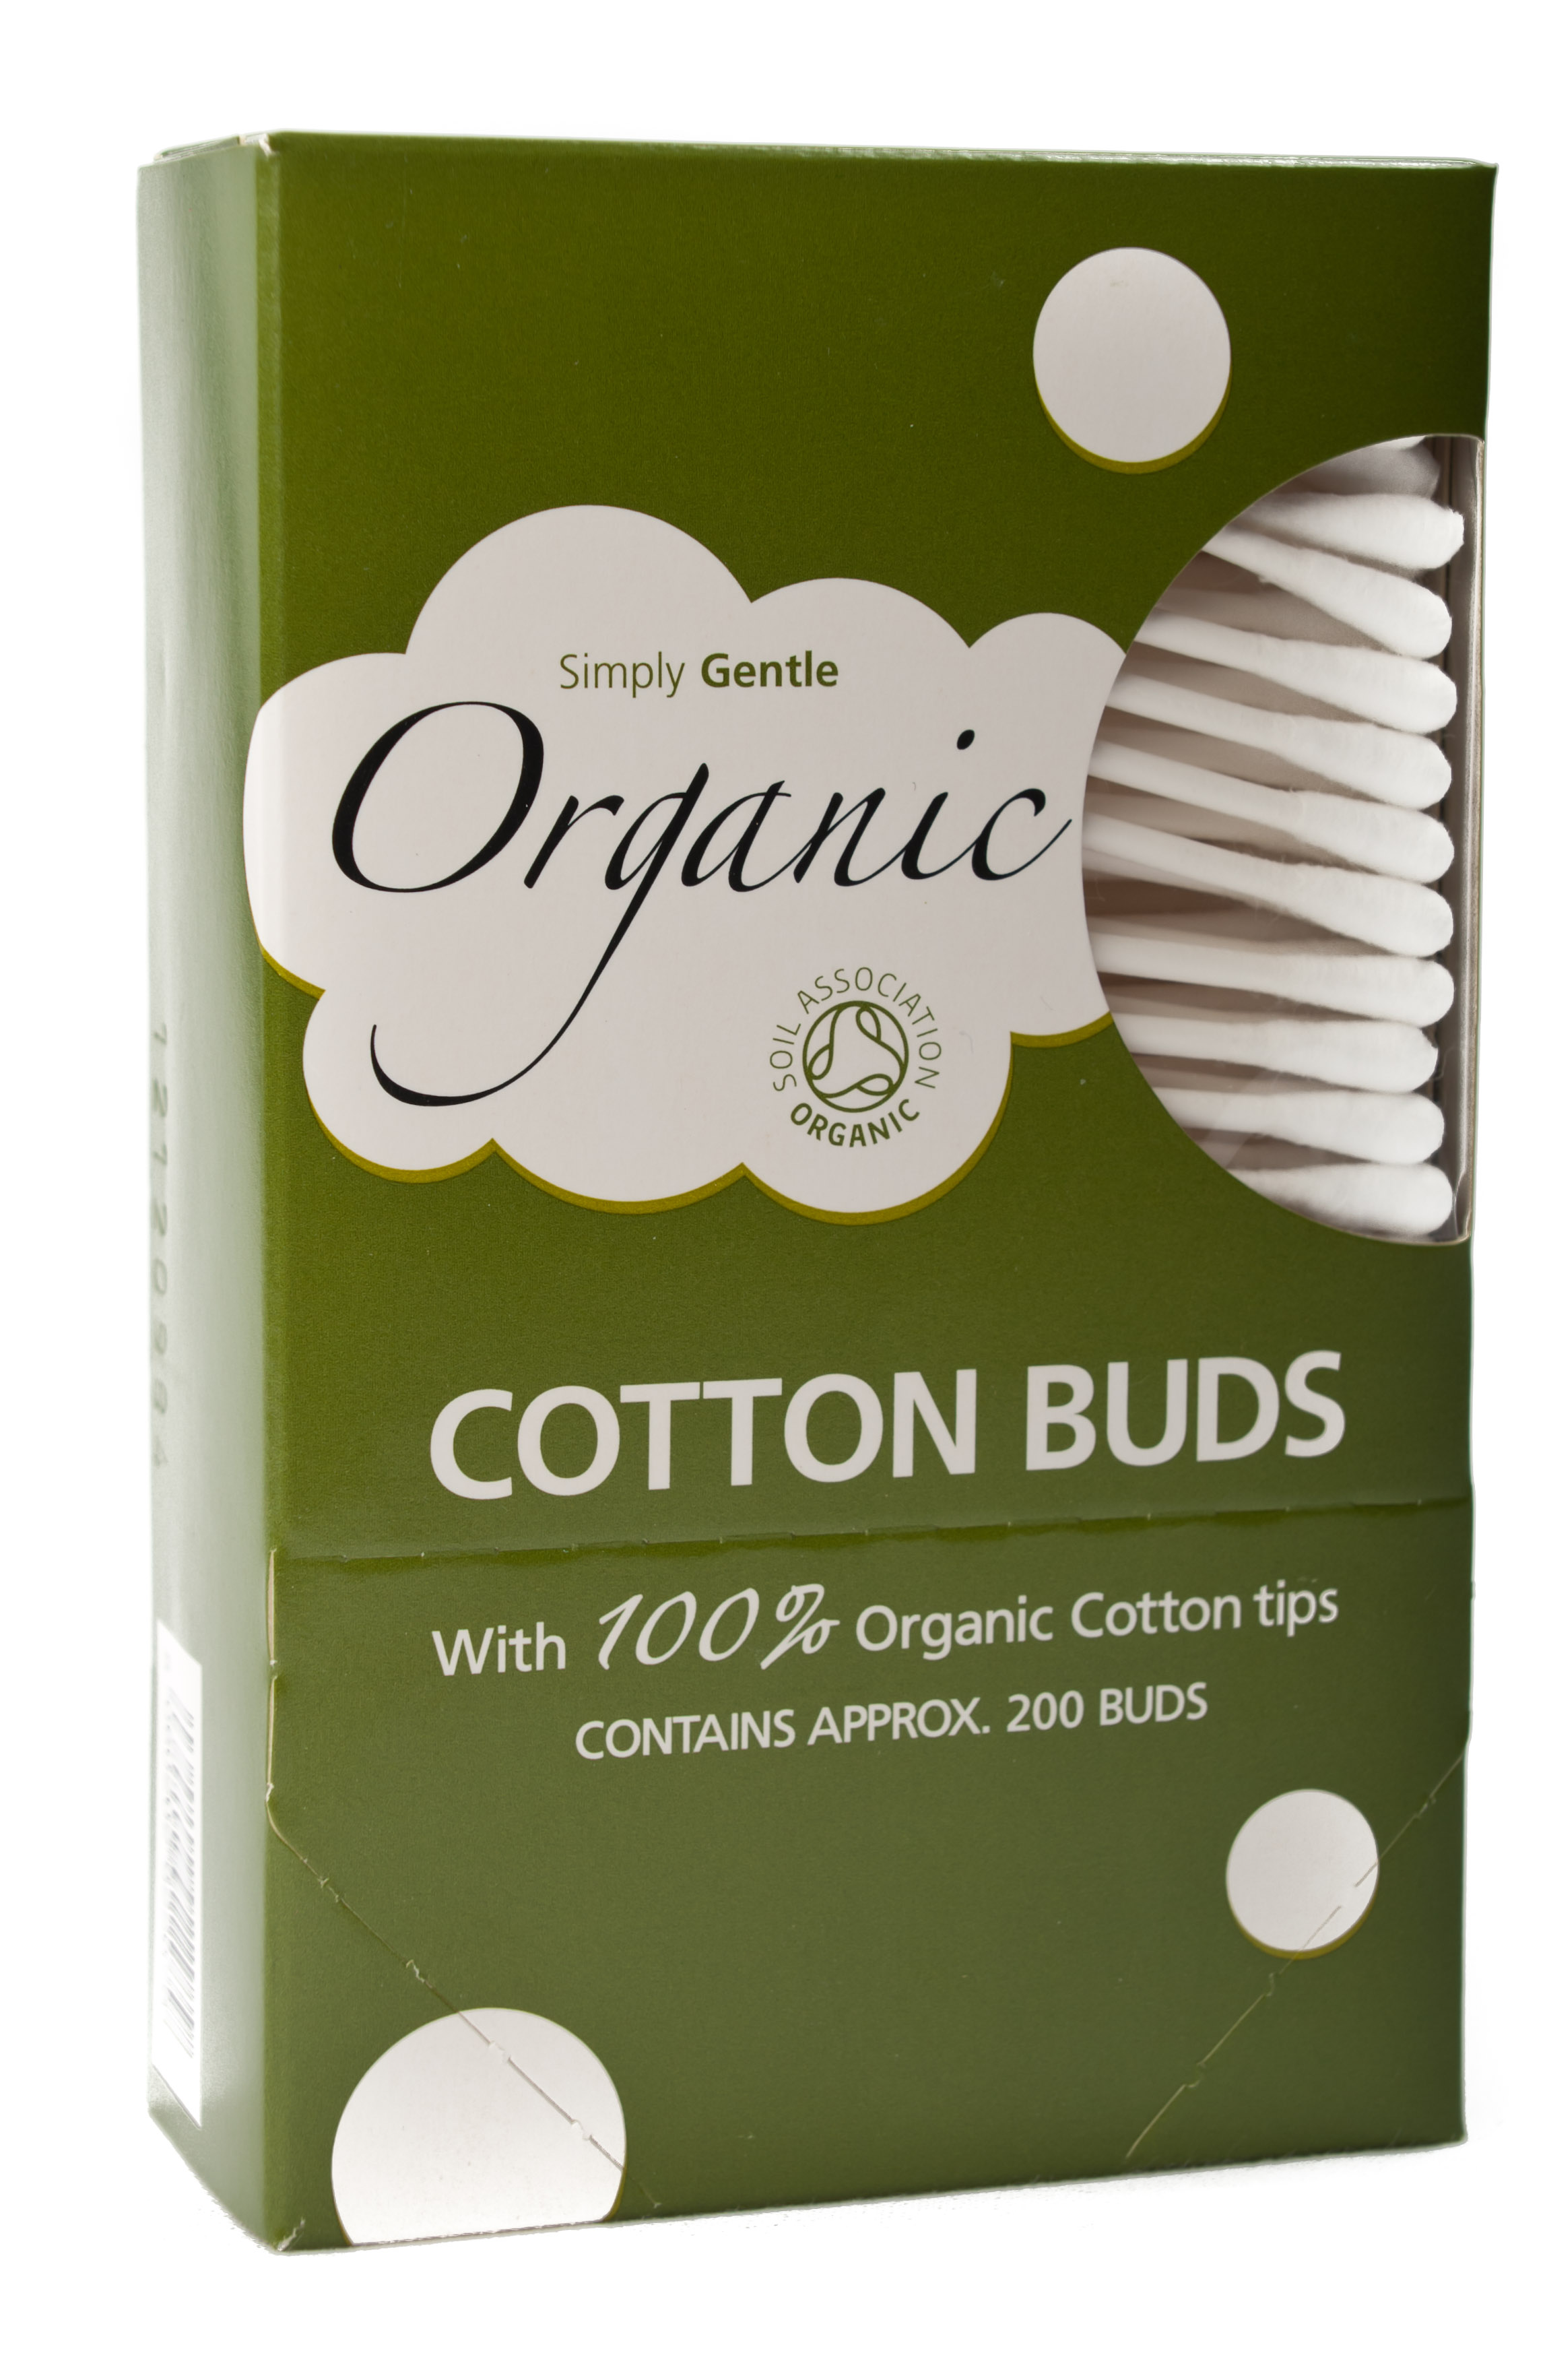 Simply Gentle Cotton Buds